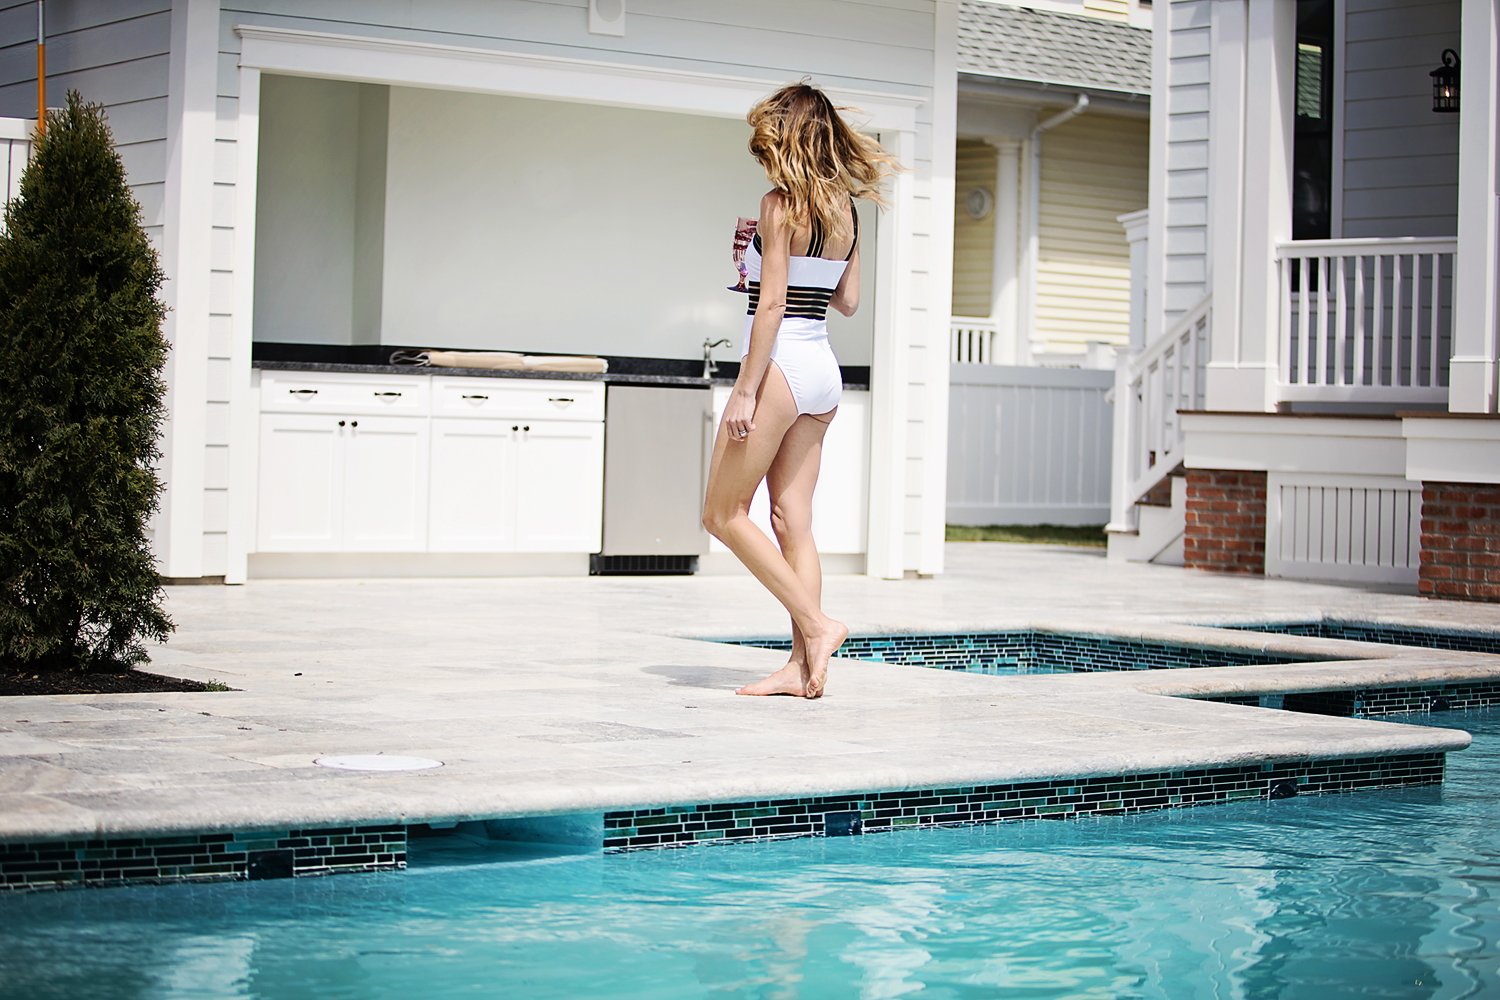 The Motherchic wearing Kenneth Cole Reaction swimsuit from Macy's